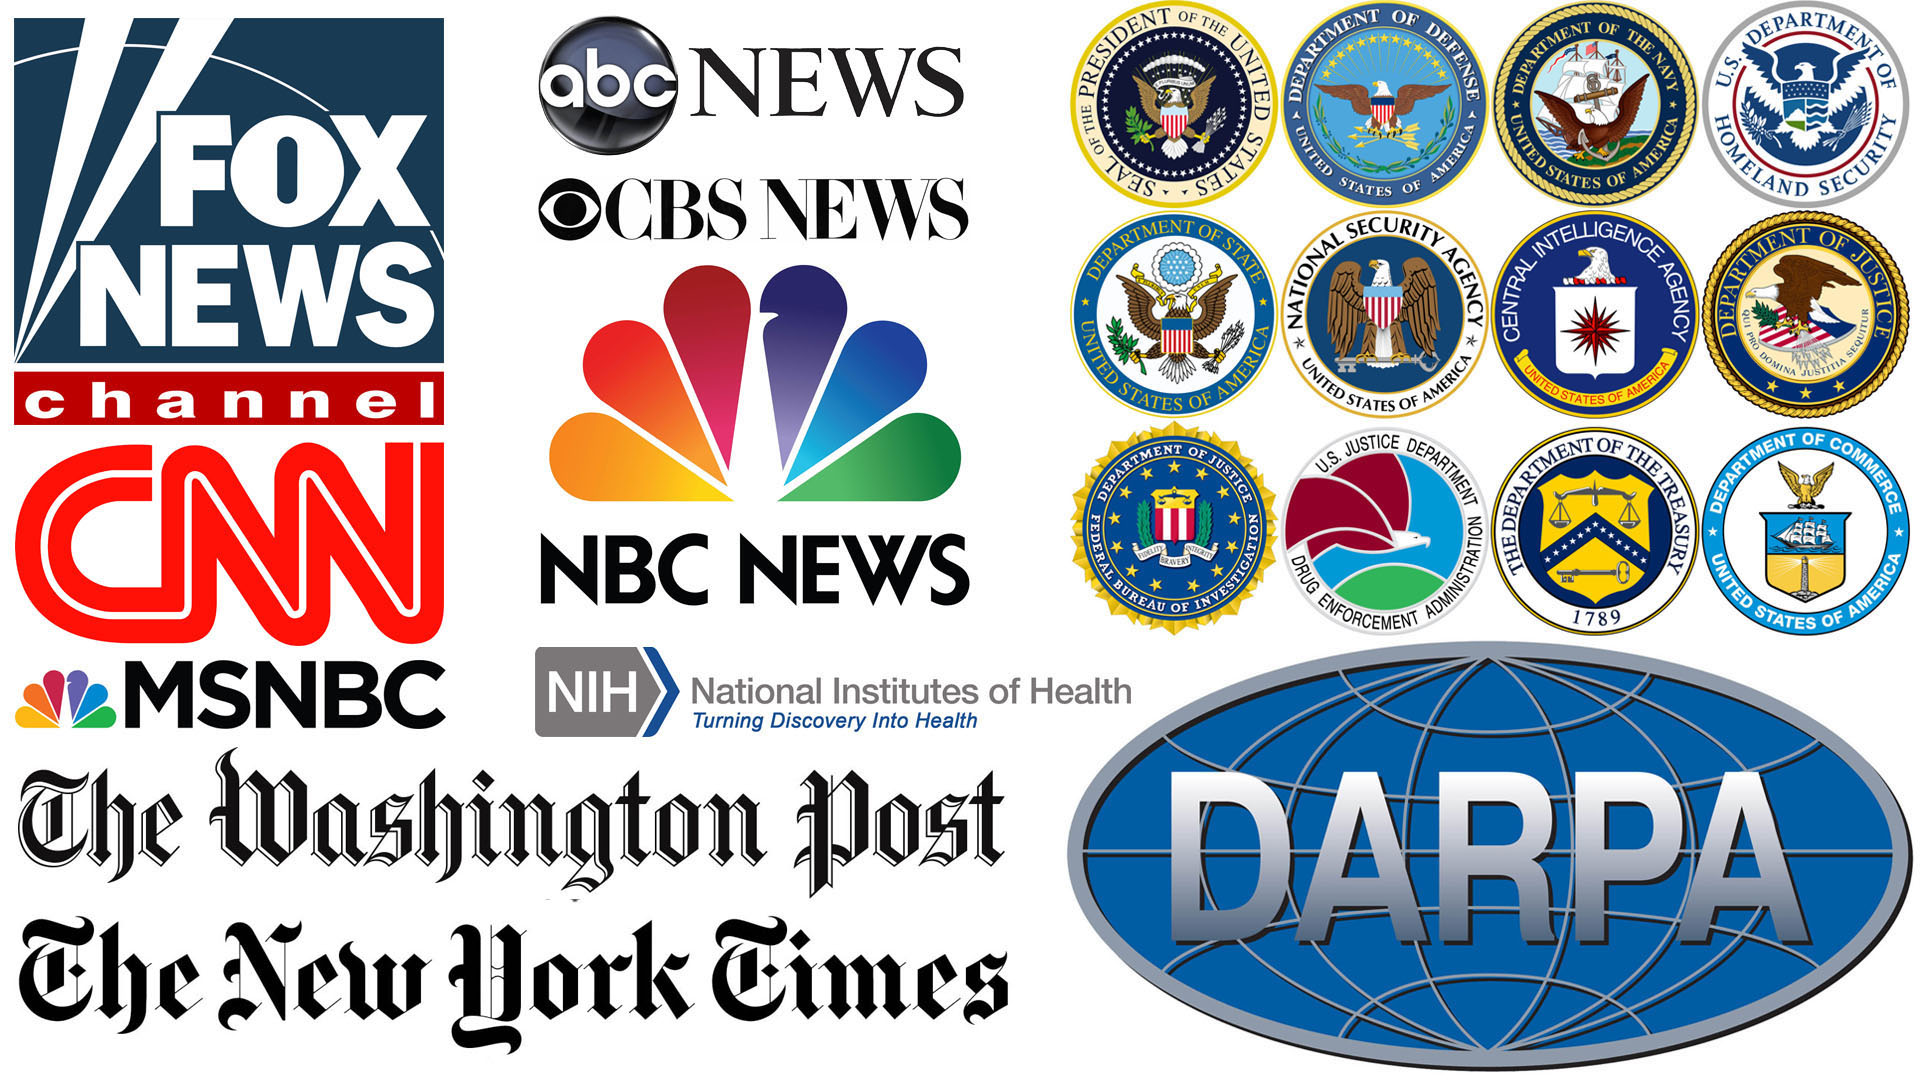 Many American Mass Media News and Official U.S. Government Seals and Logos